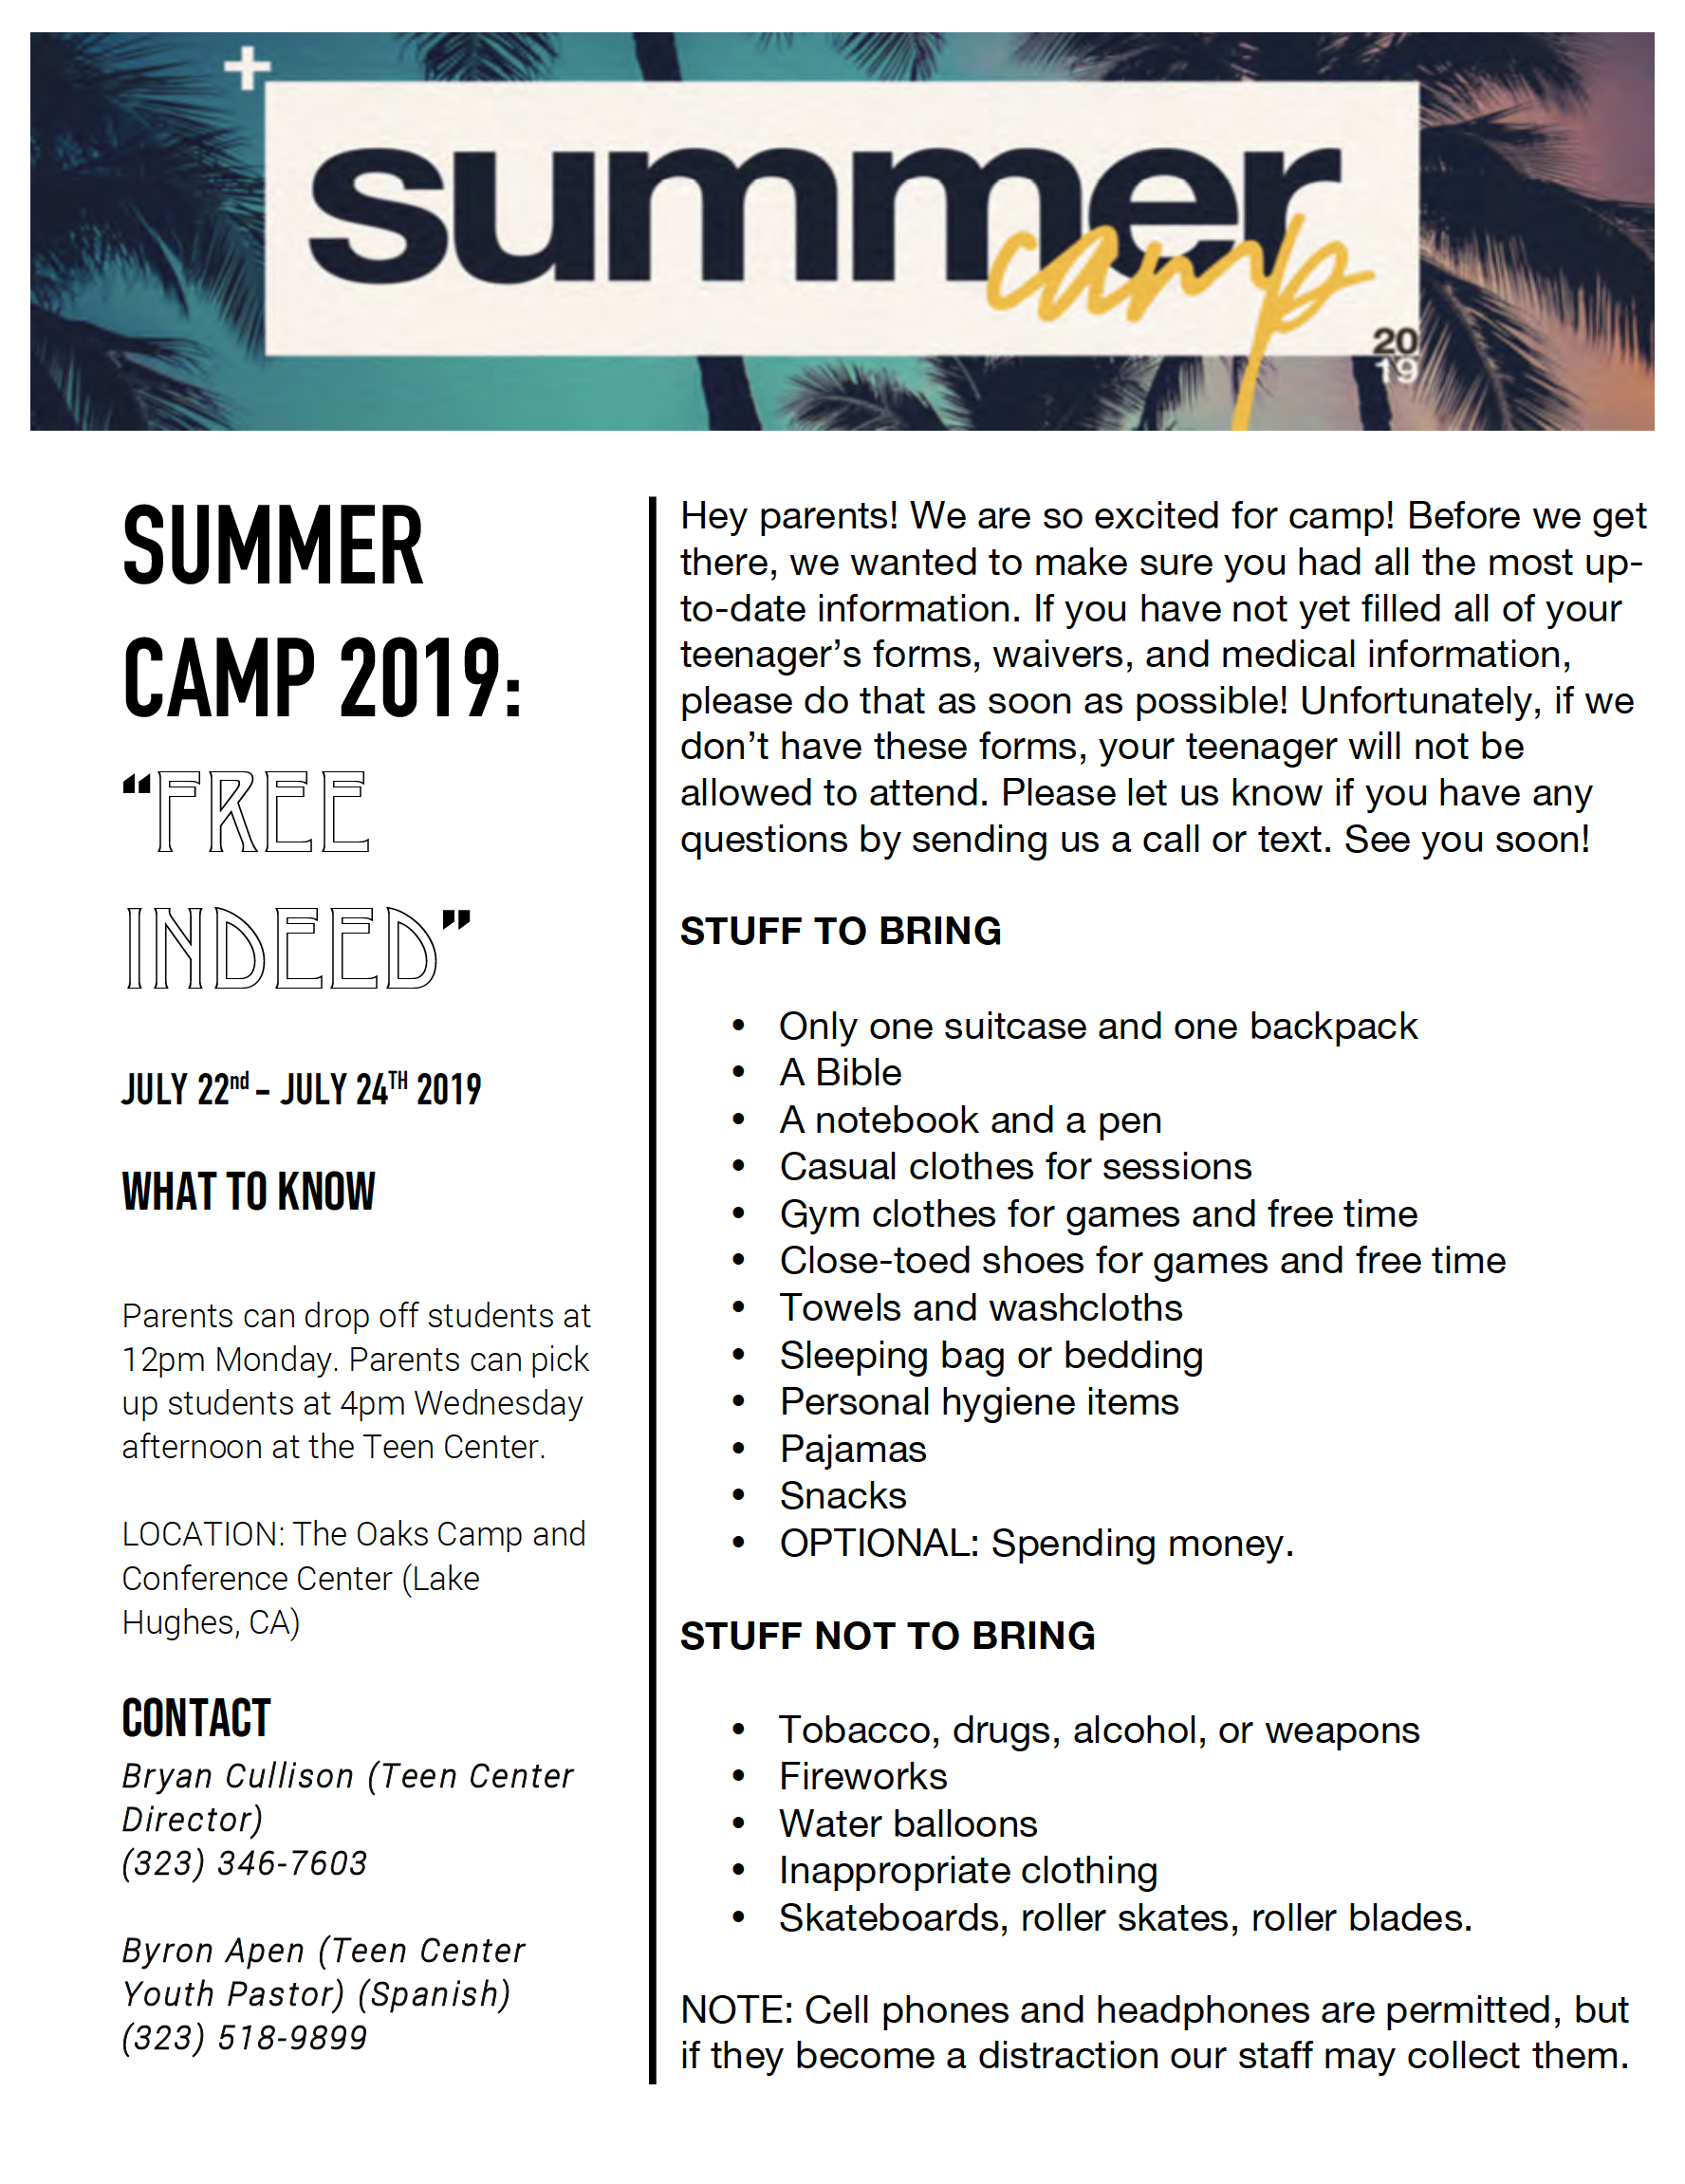 Summer Camp Packet Page One Image.png